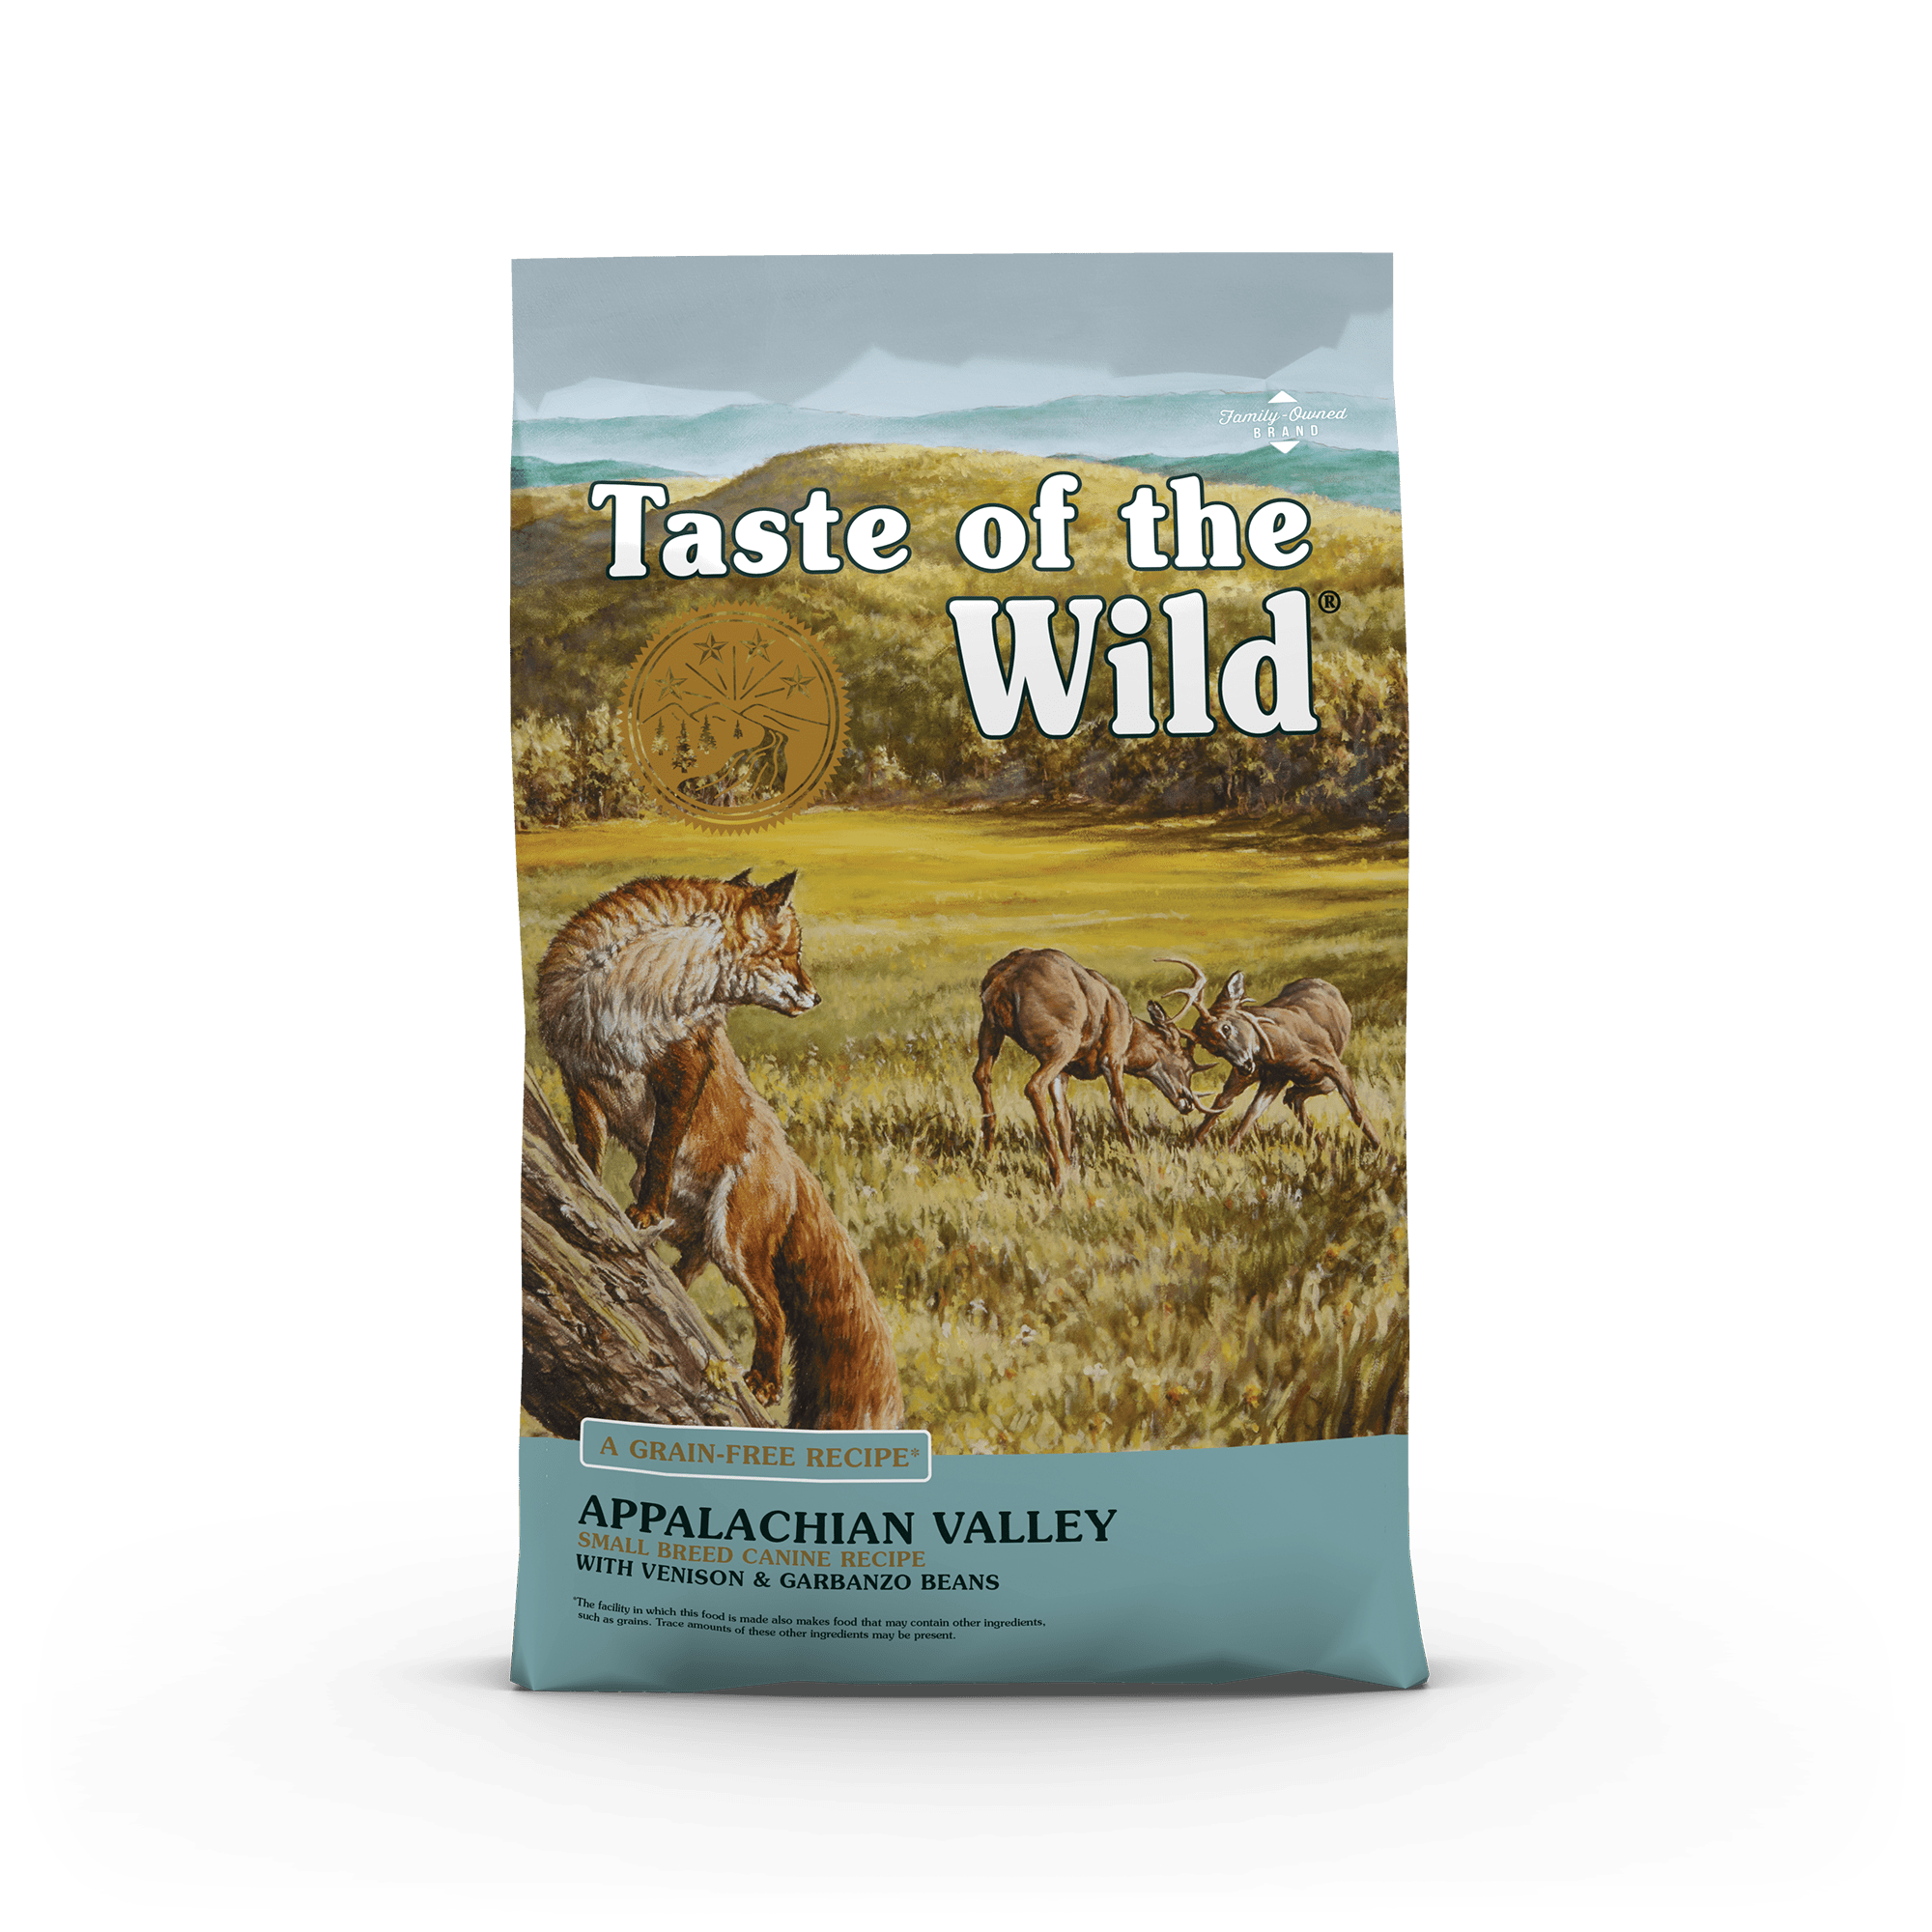 Appalachian Valley Small Breed Canine Recipe with Venison & Garbanzo Beans Image